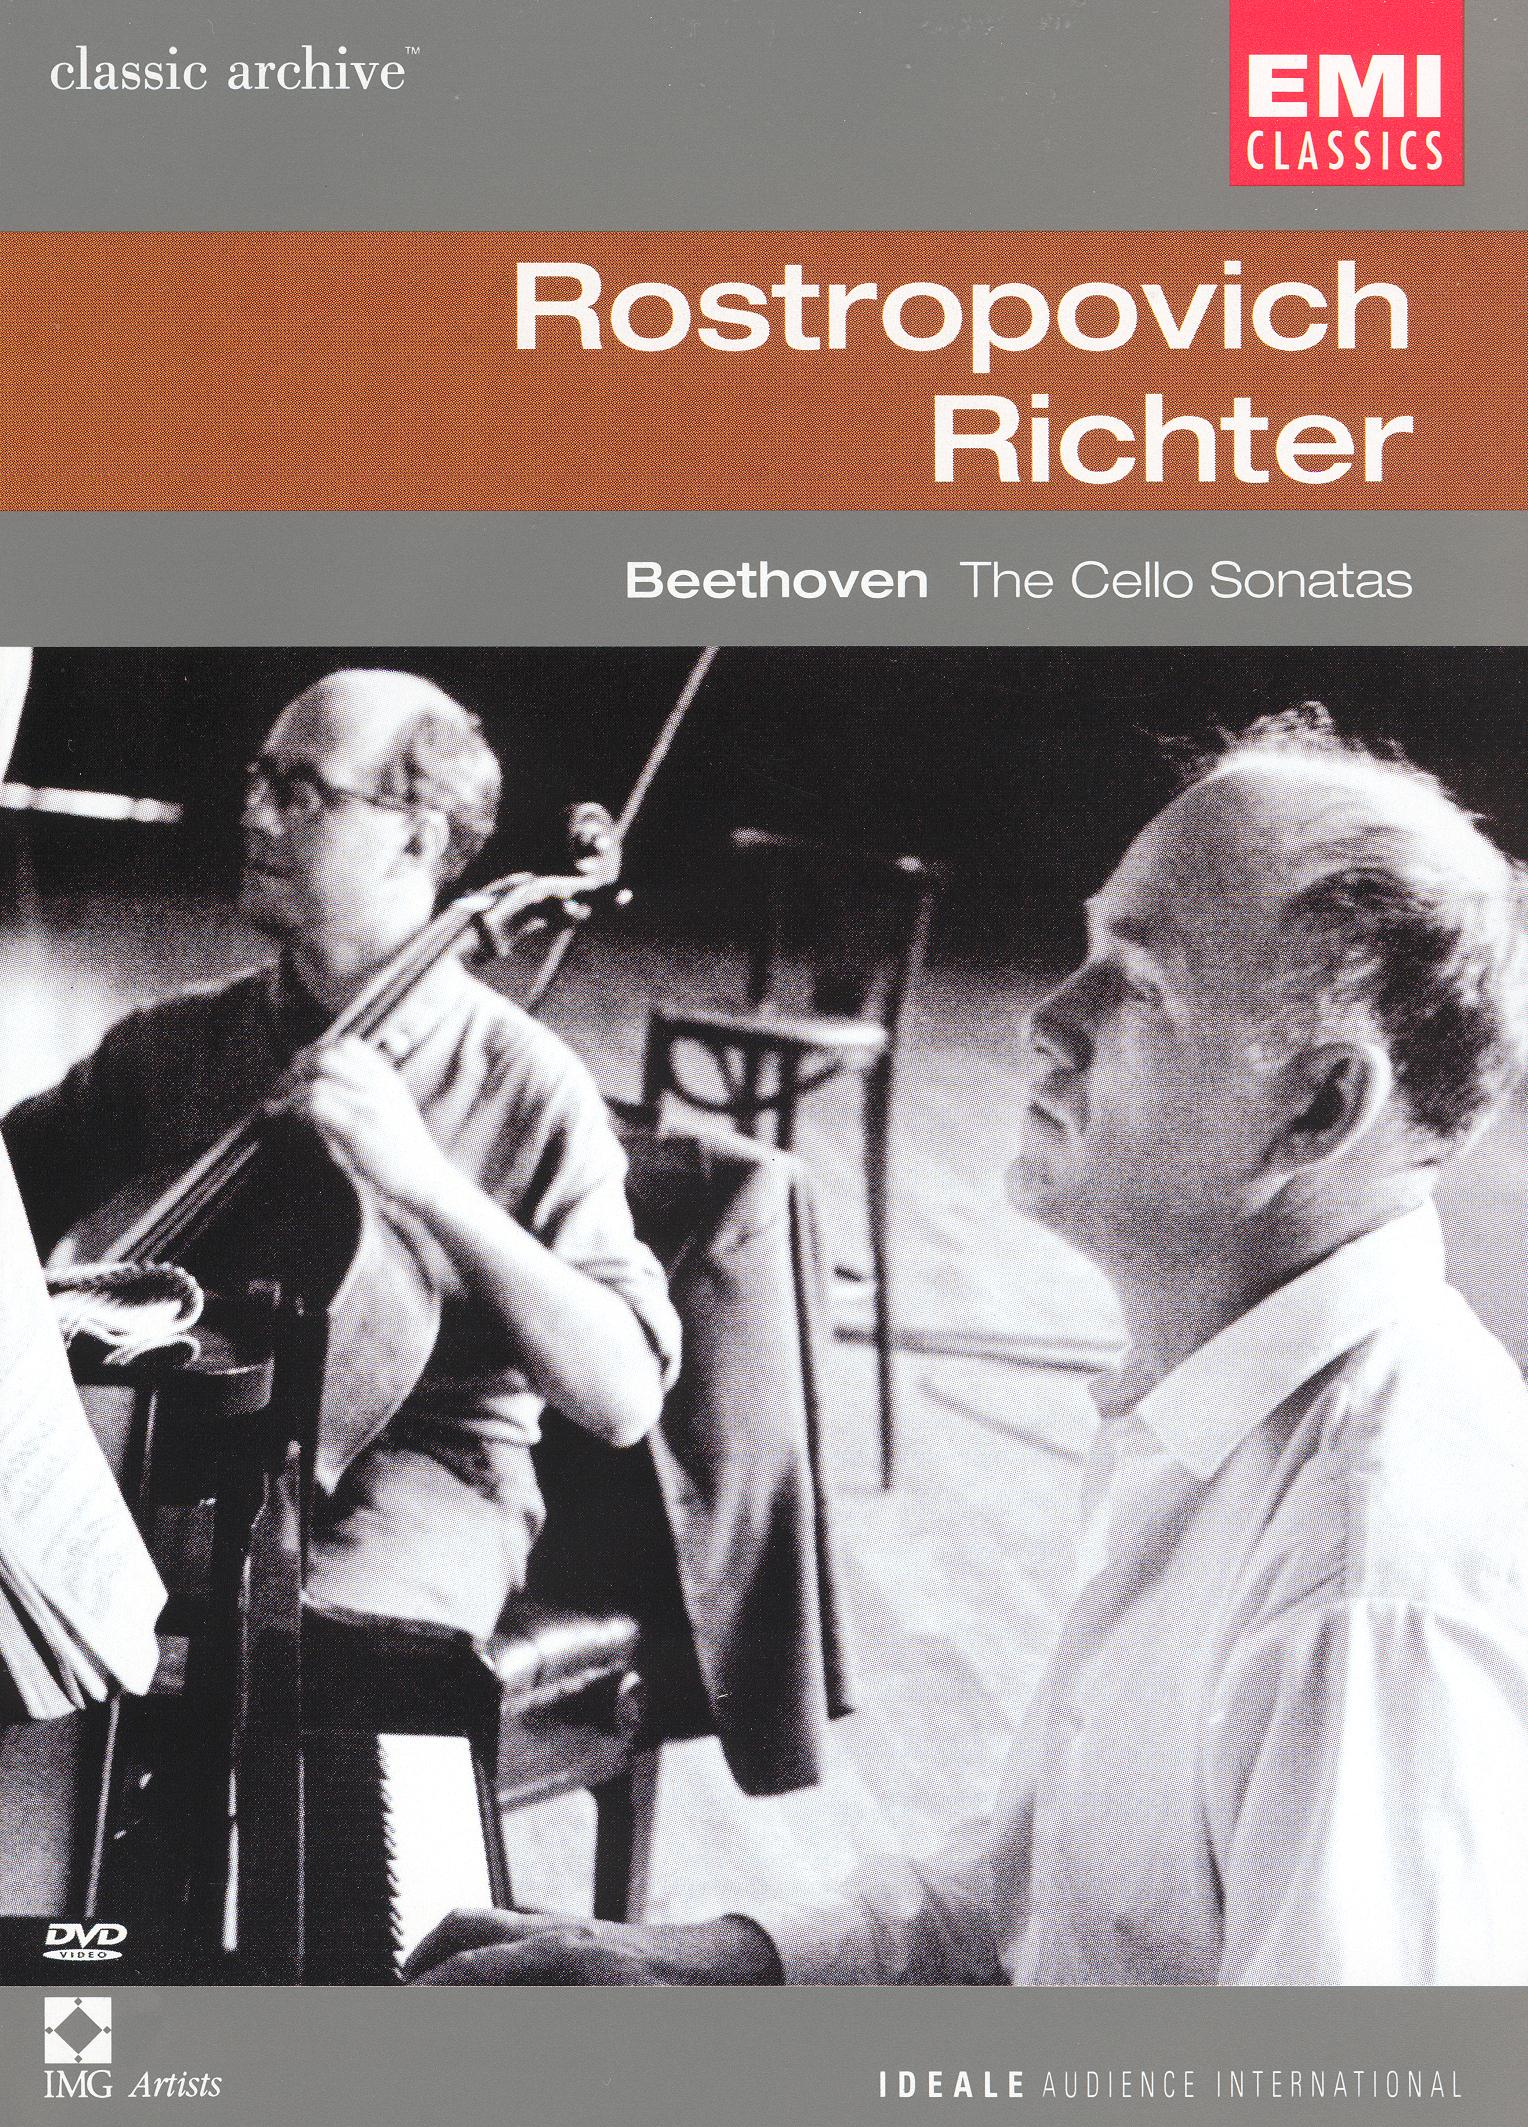 Rostropovich/Richter: Beethoven - The Cello Sonatas